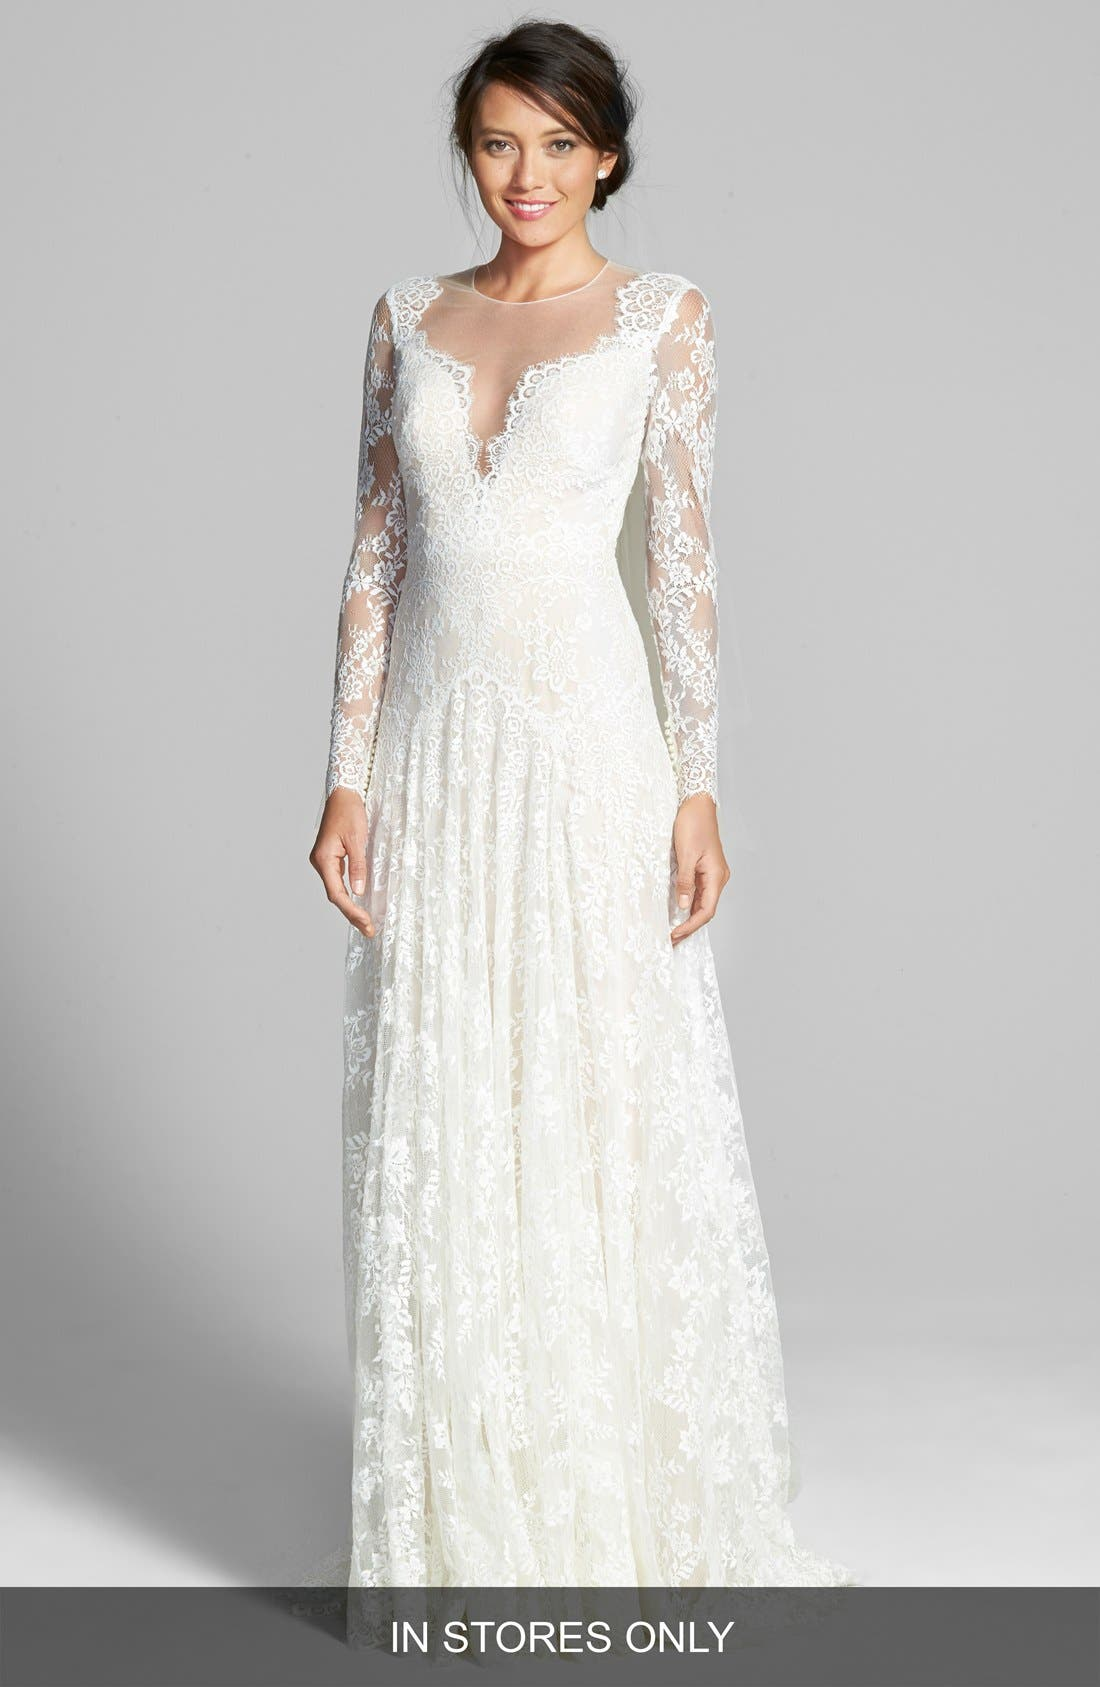 Alternate Image 1 Selected - Watters Arcelia Illusion Yoke A-Line Lace Gown